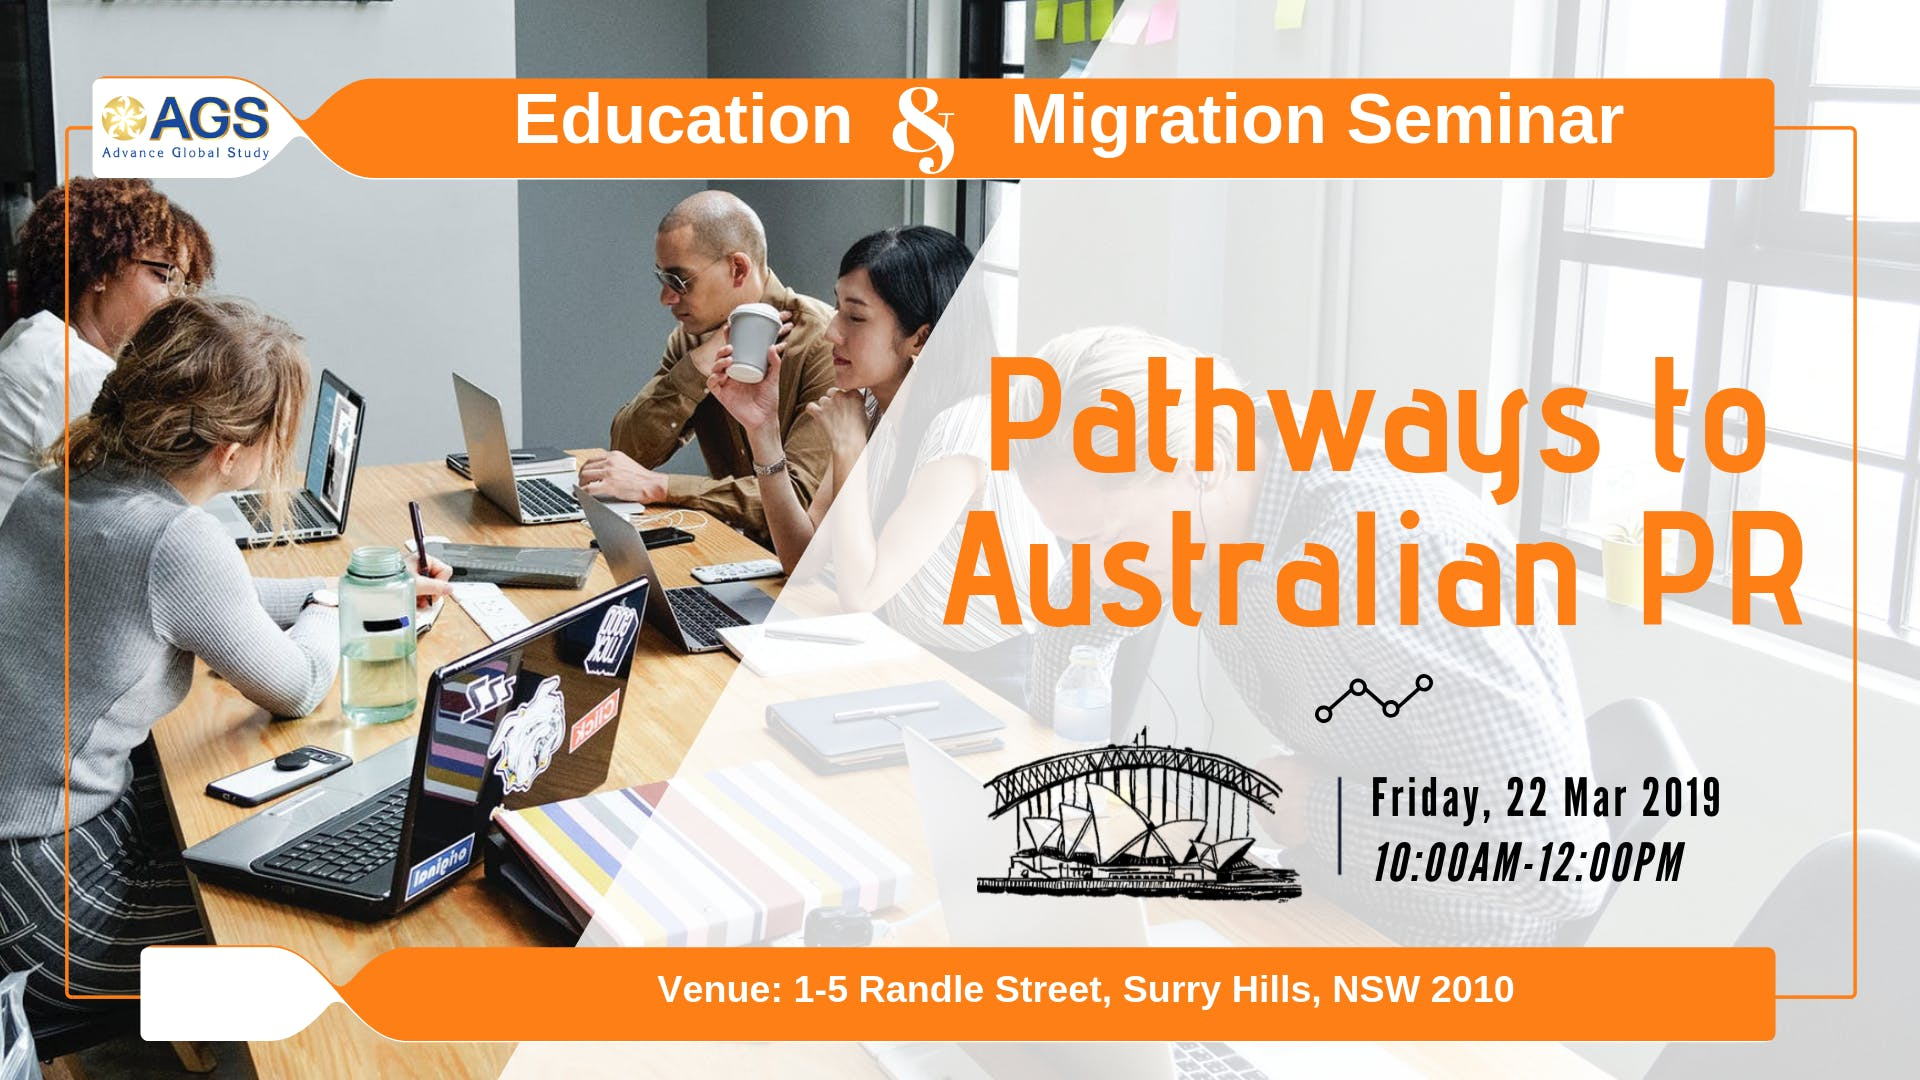 [Seminar] Pathways to Australian PR